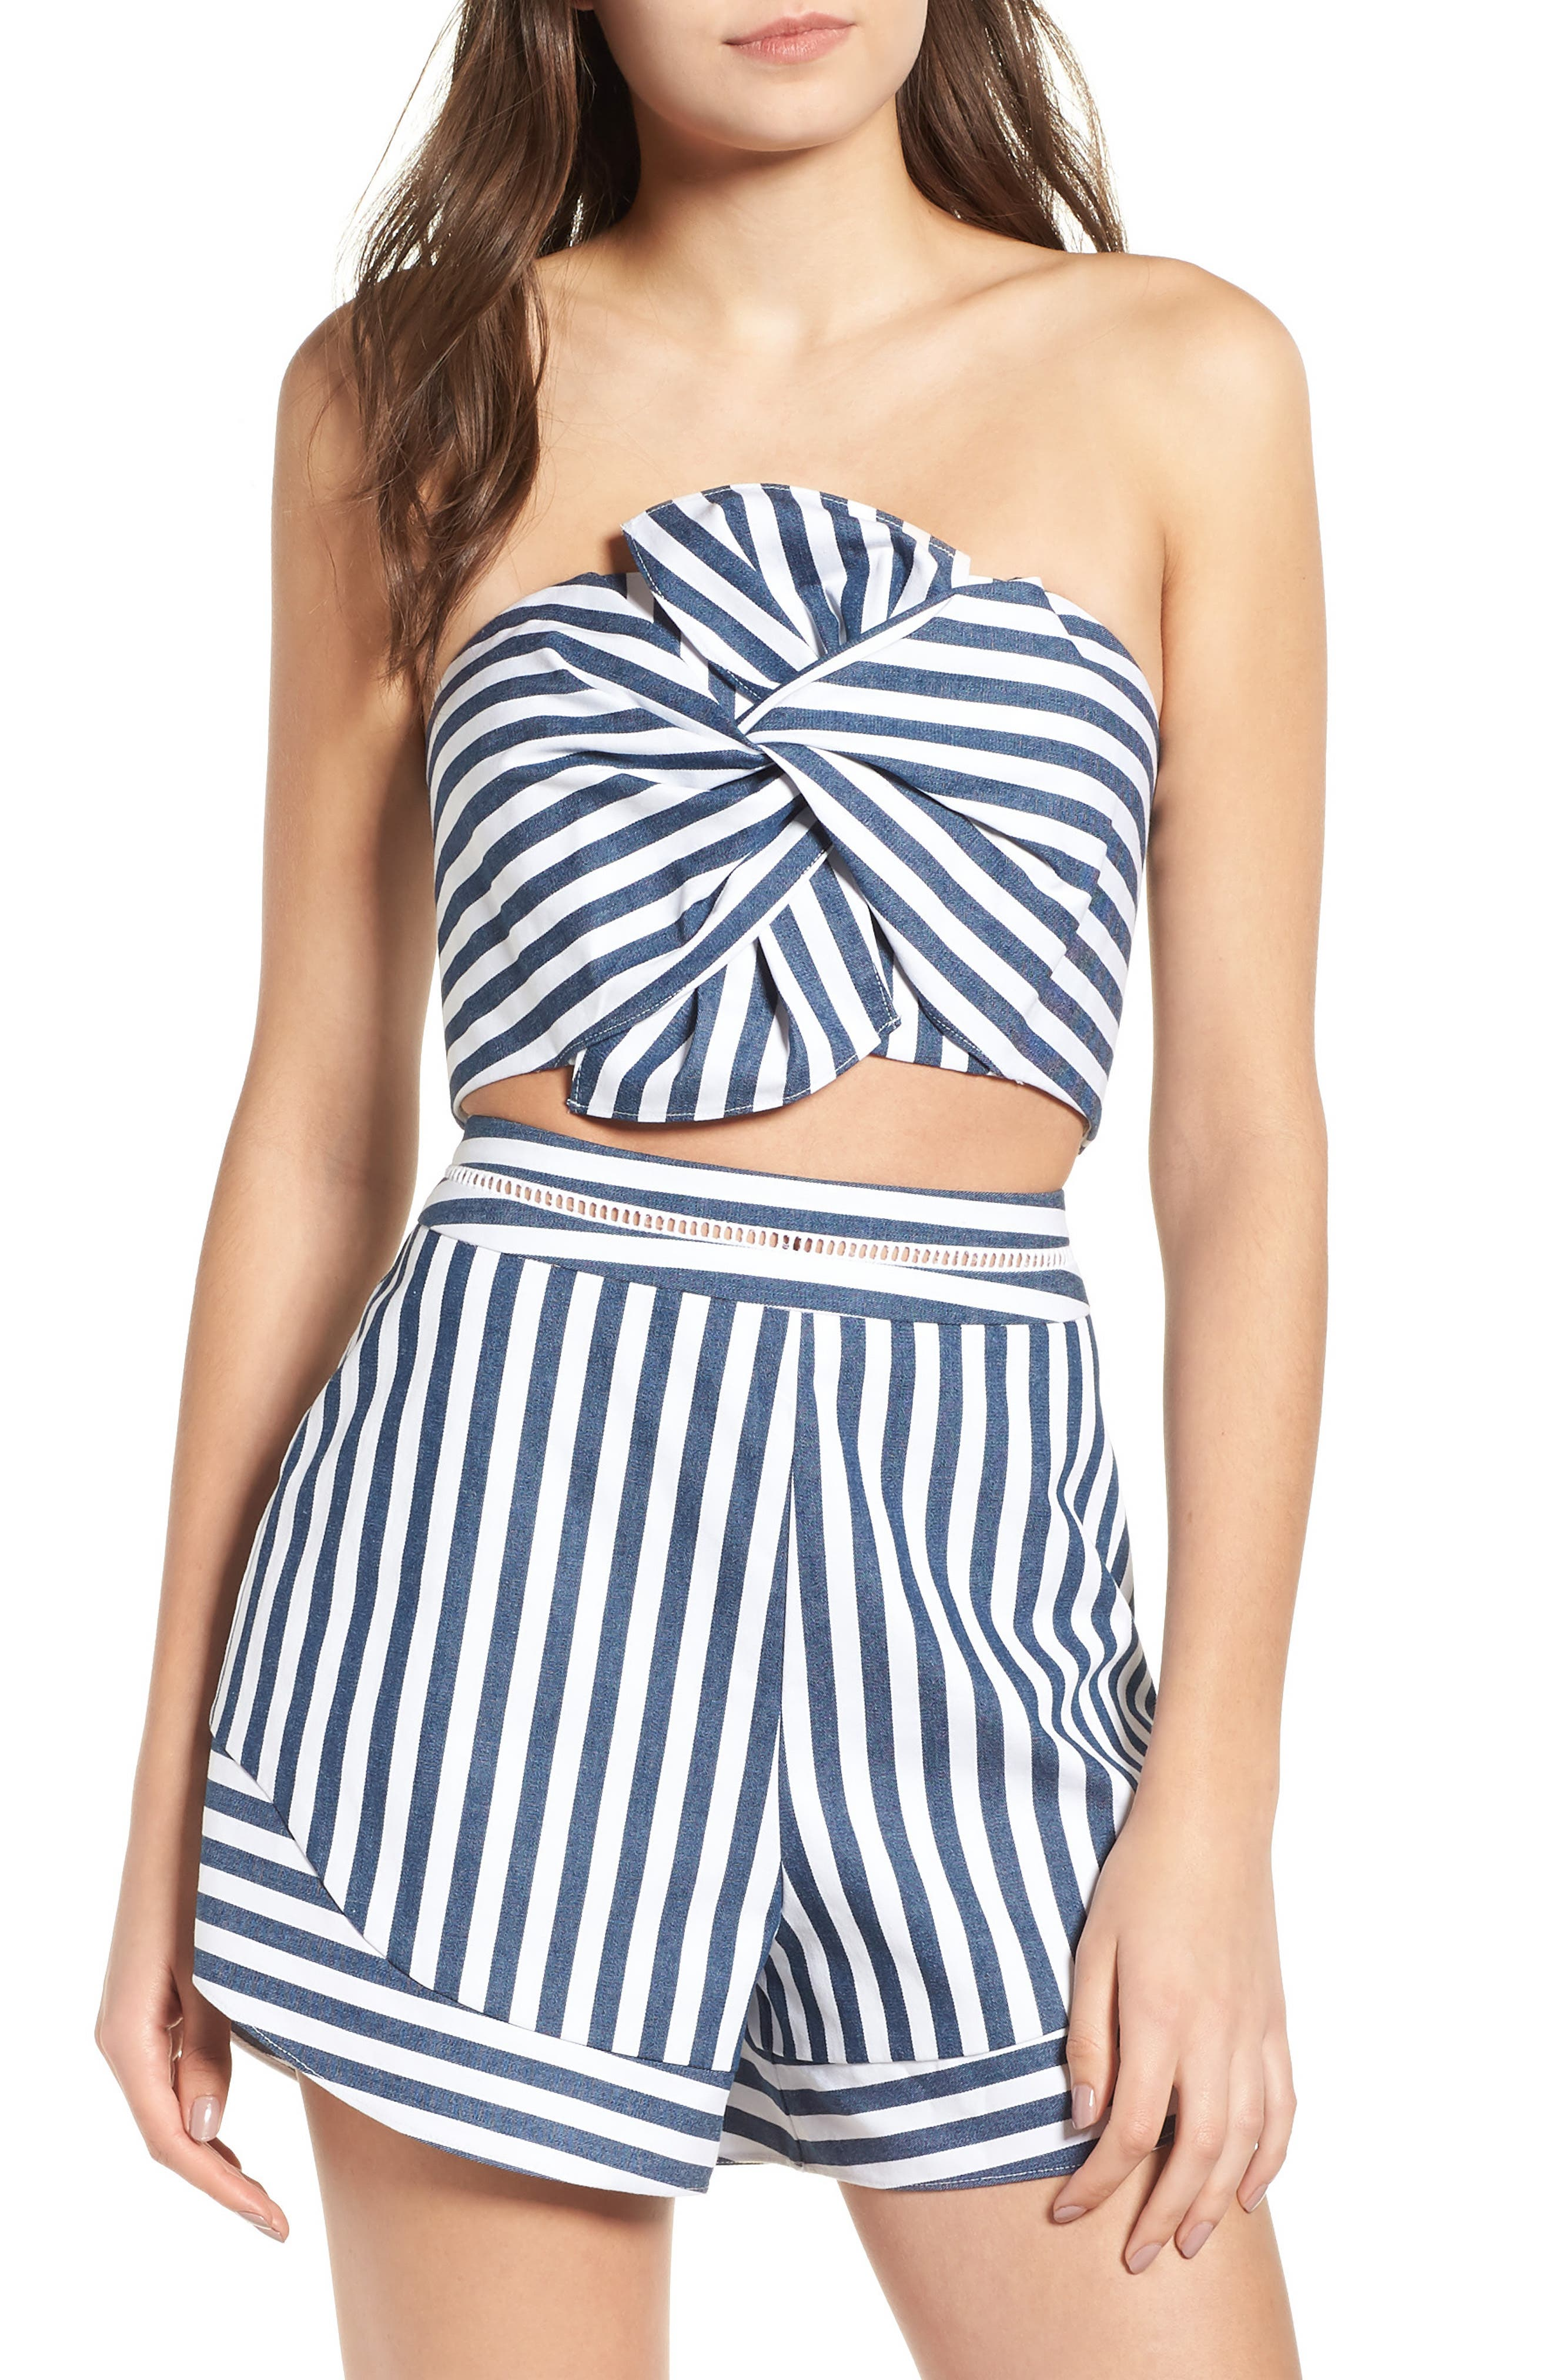 Durham Knotted Bow Tube Top,                         Main,                         color, 400